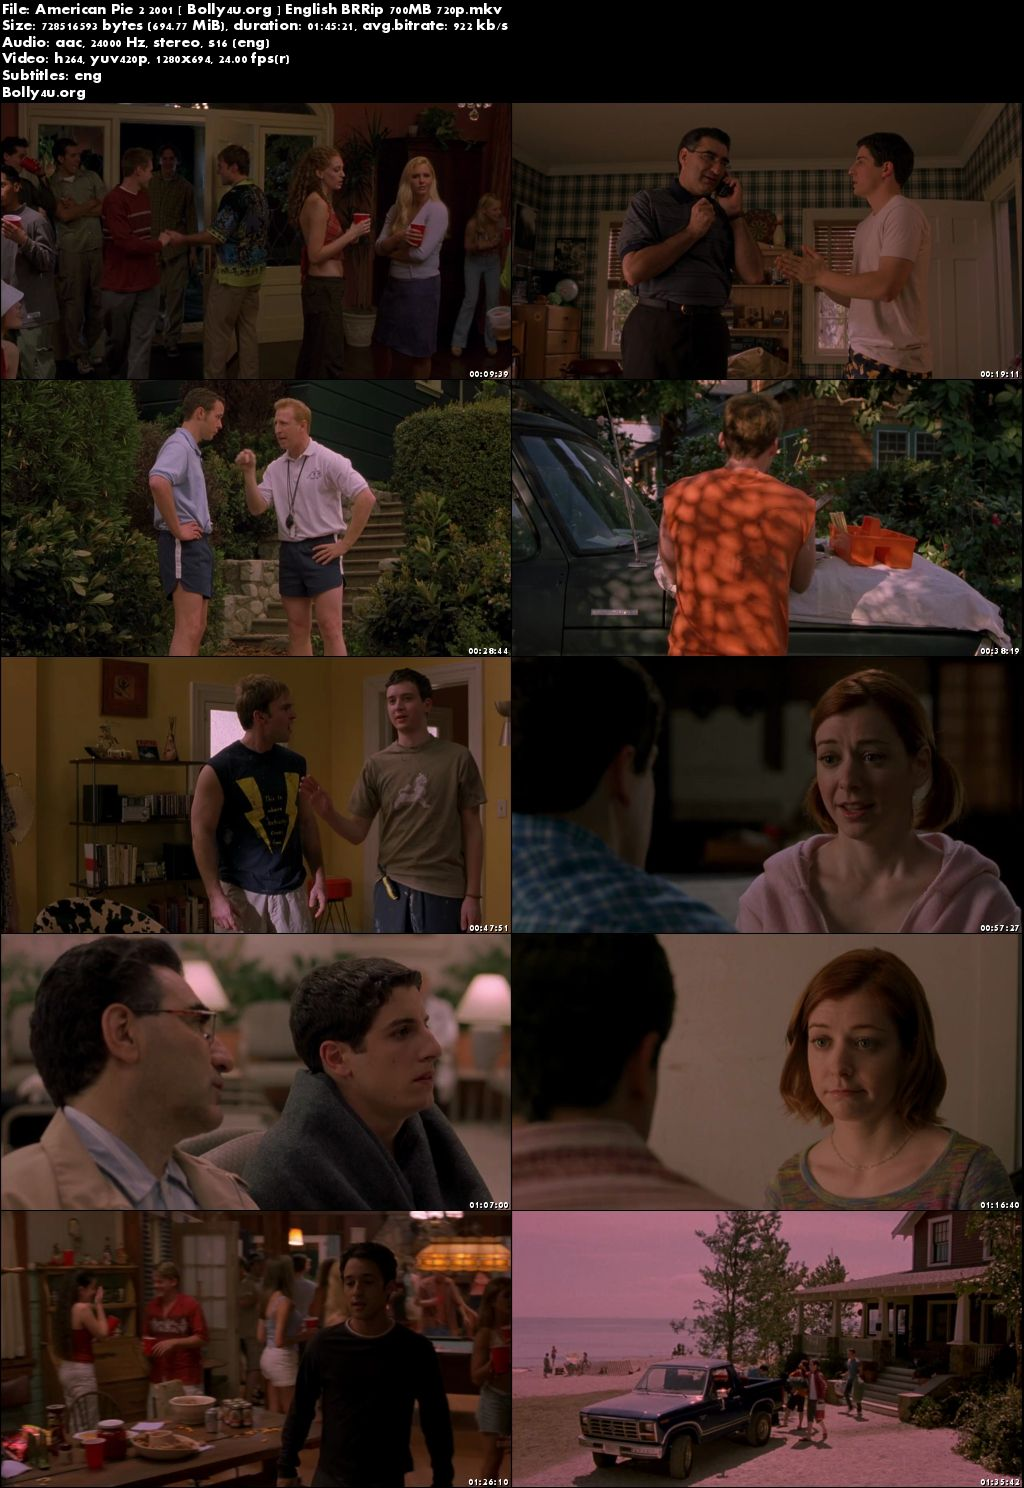 American Pie 2 2001 BRRip 700MB English Movie 720p Download